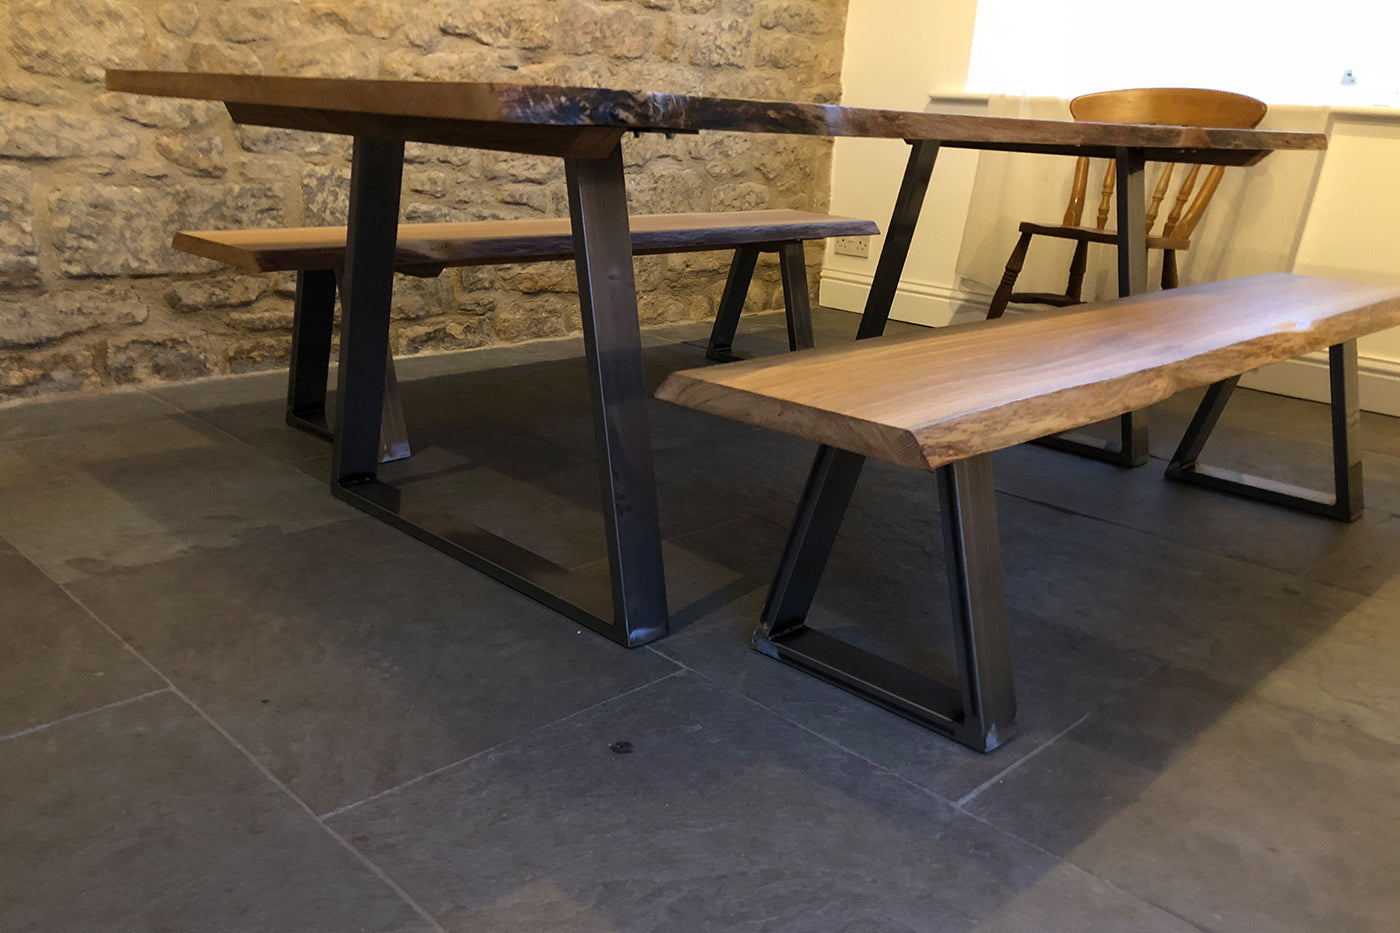 Oak table with industrial legs